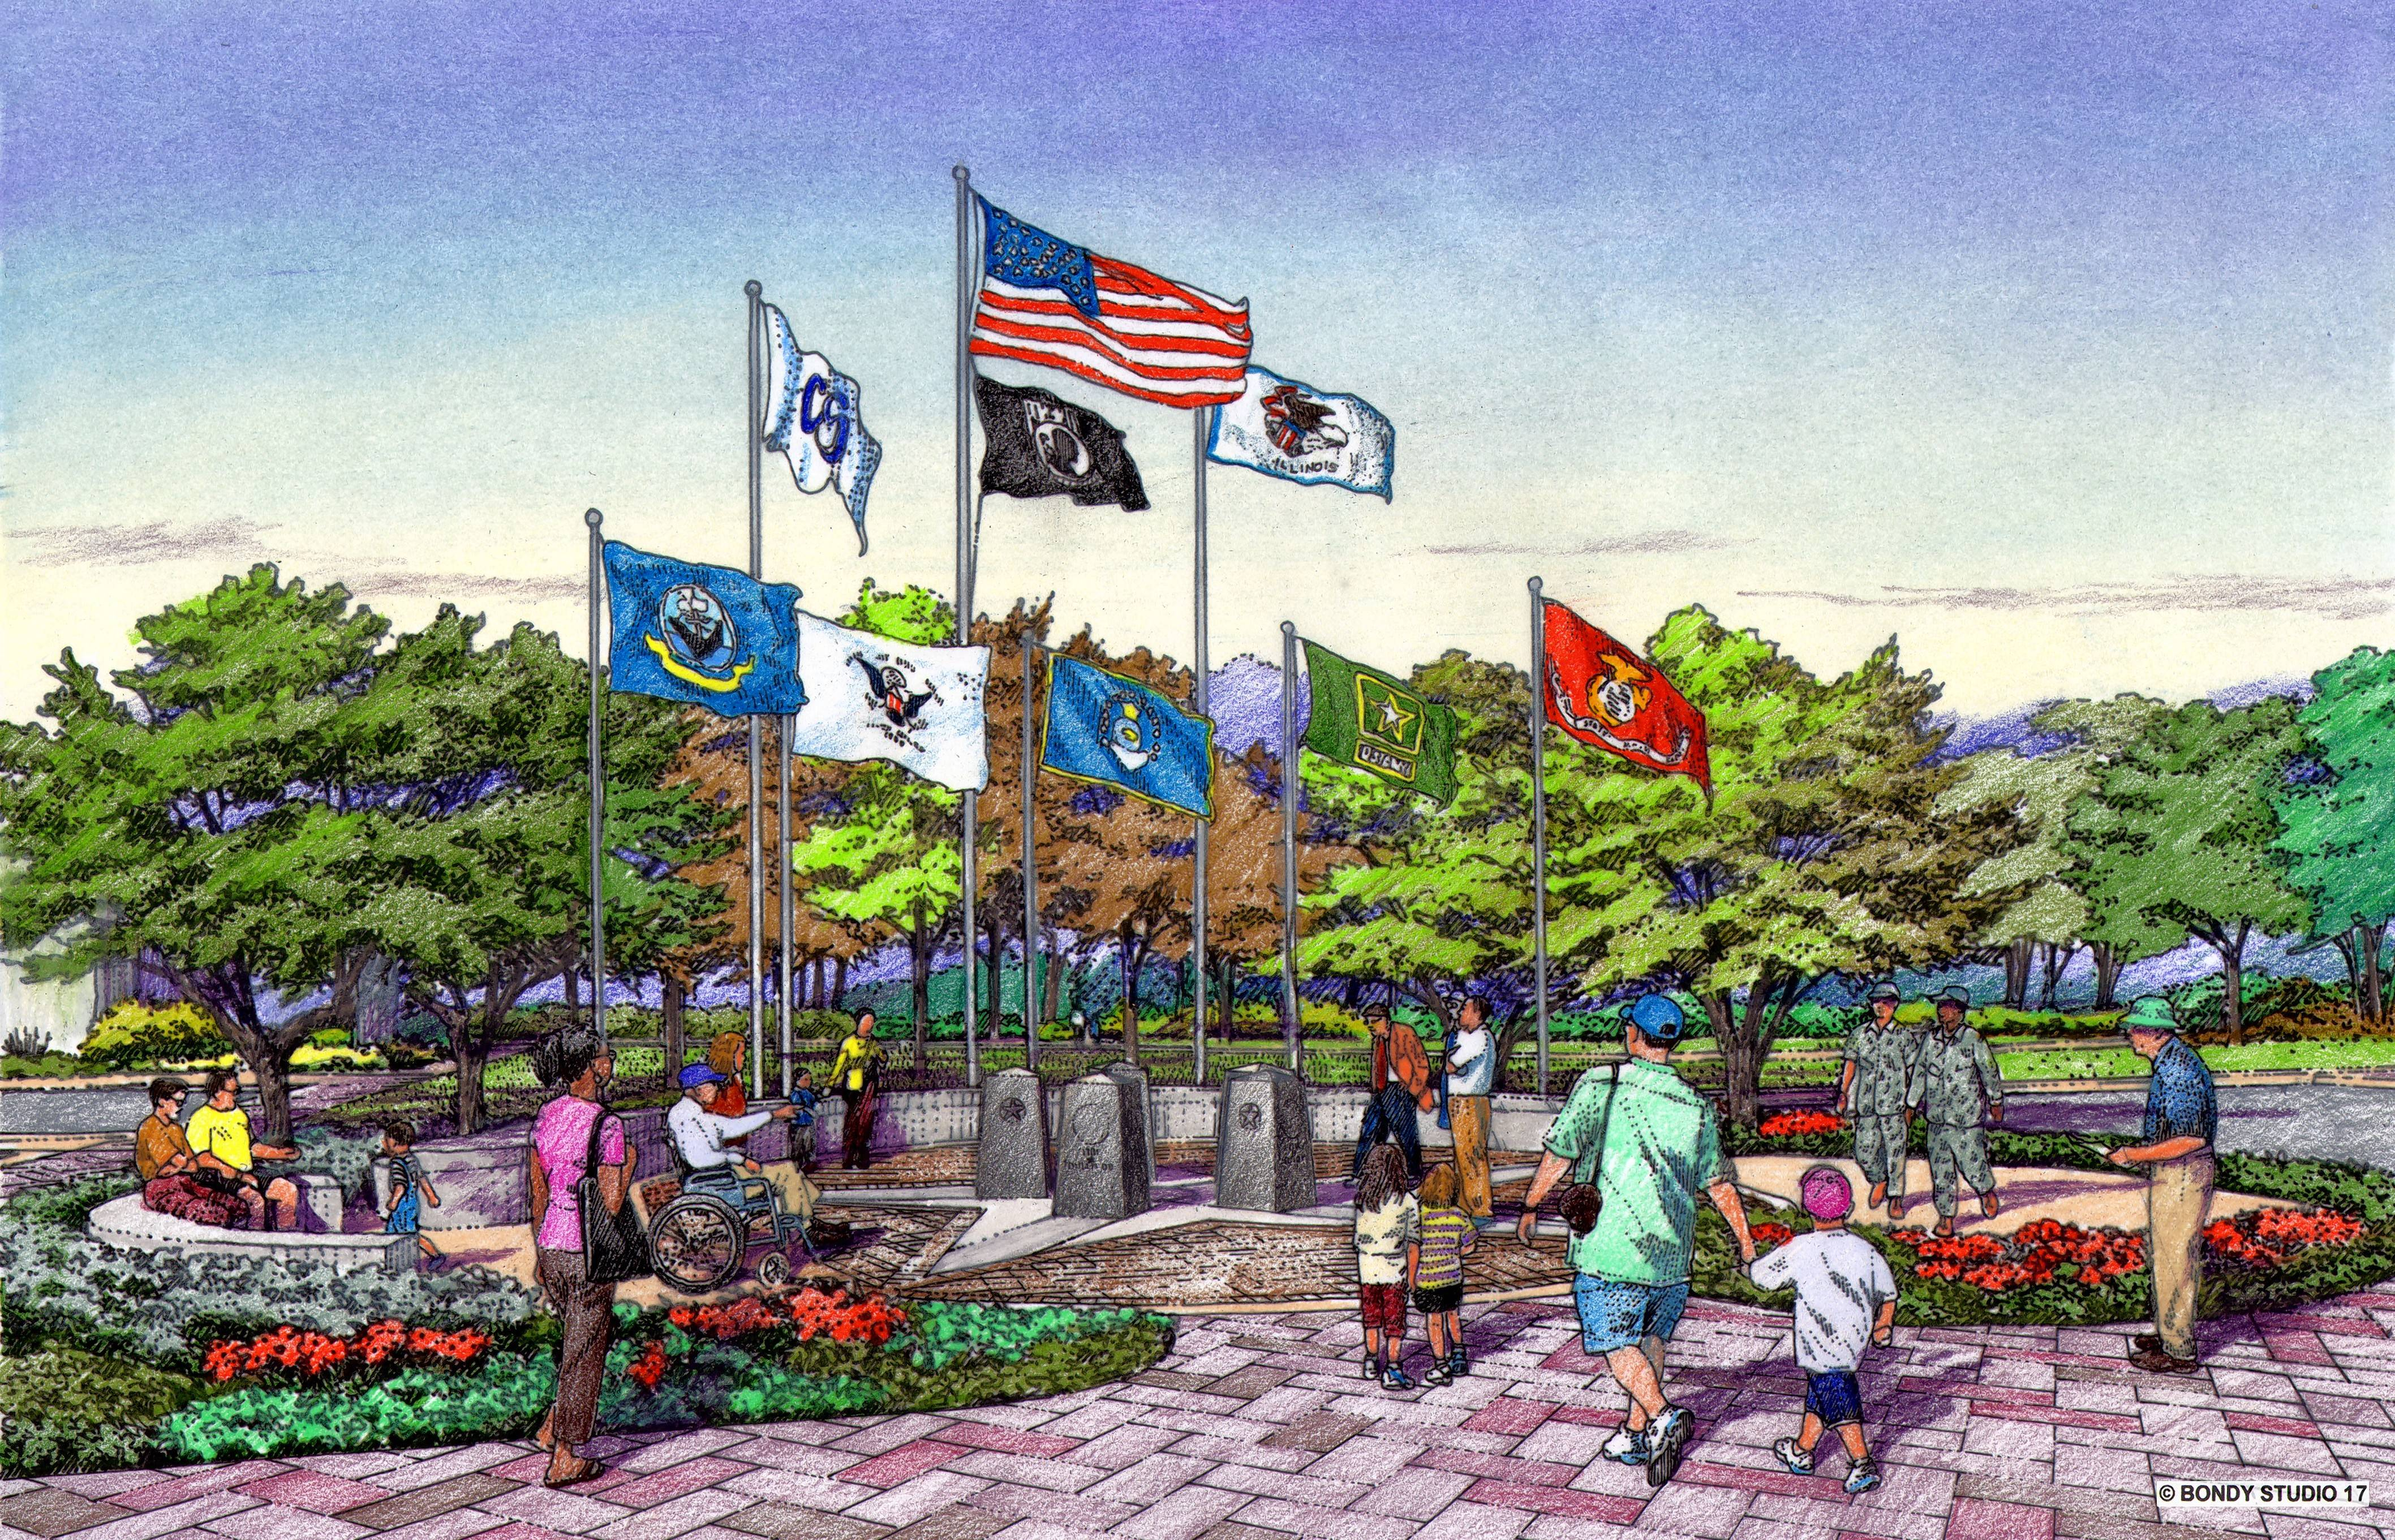 A fundraising campaign has garnered $188,500 for a new Carol Stream veterans memorial under construction at the village's Town Center at the southwest corner of Gary Avenue and Lies Road.